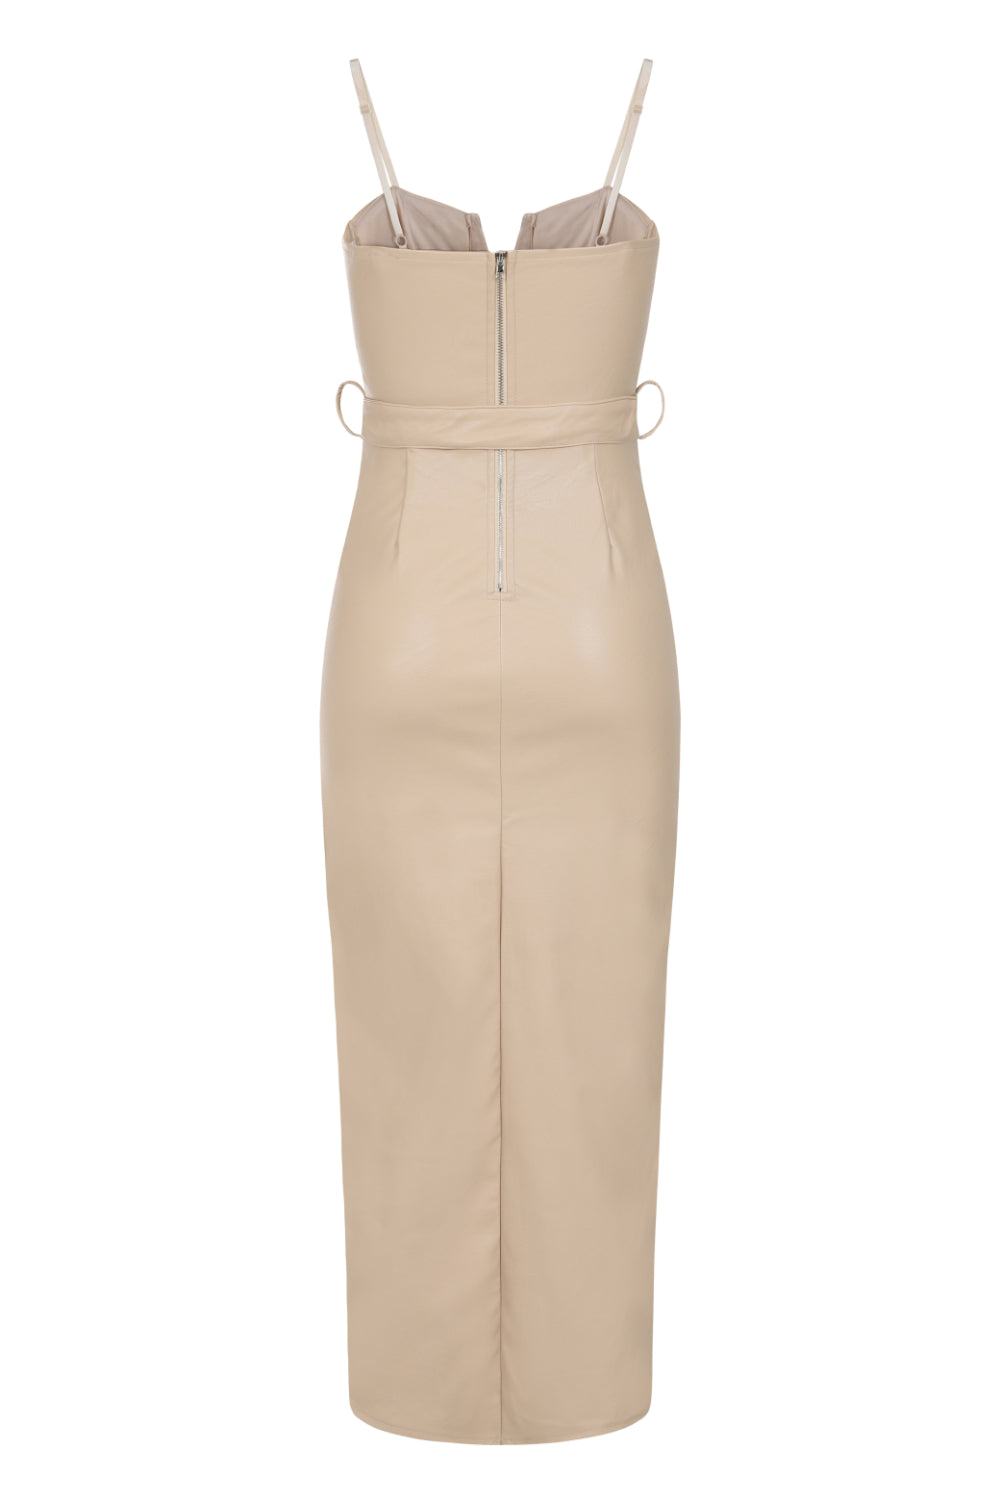 High Standards Nude Leather Belted Split Maxi Dress